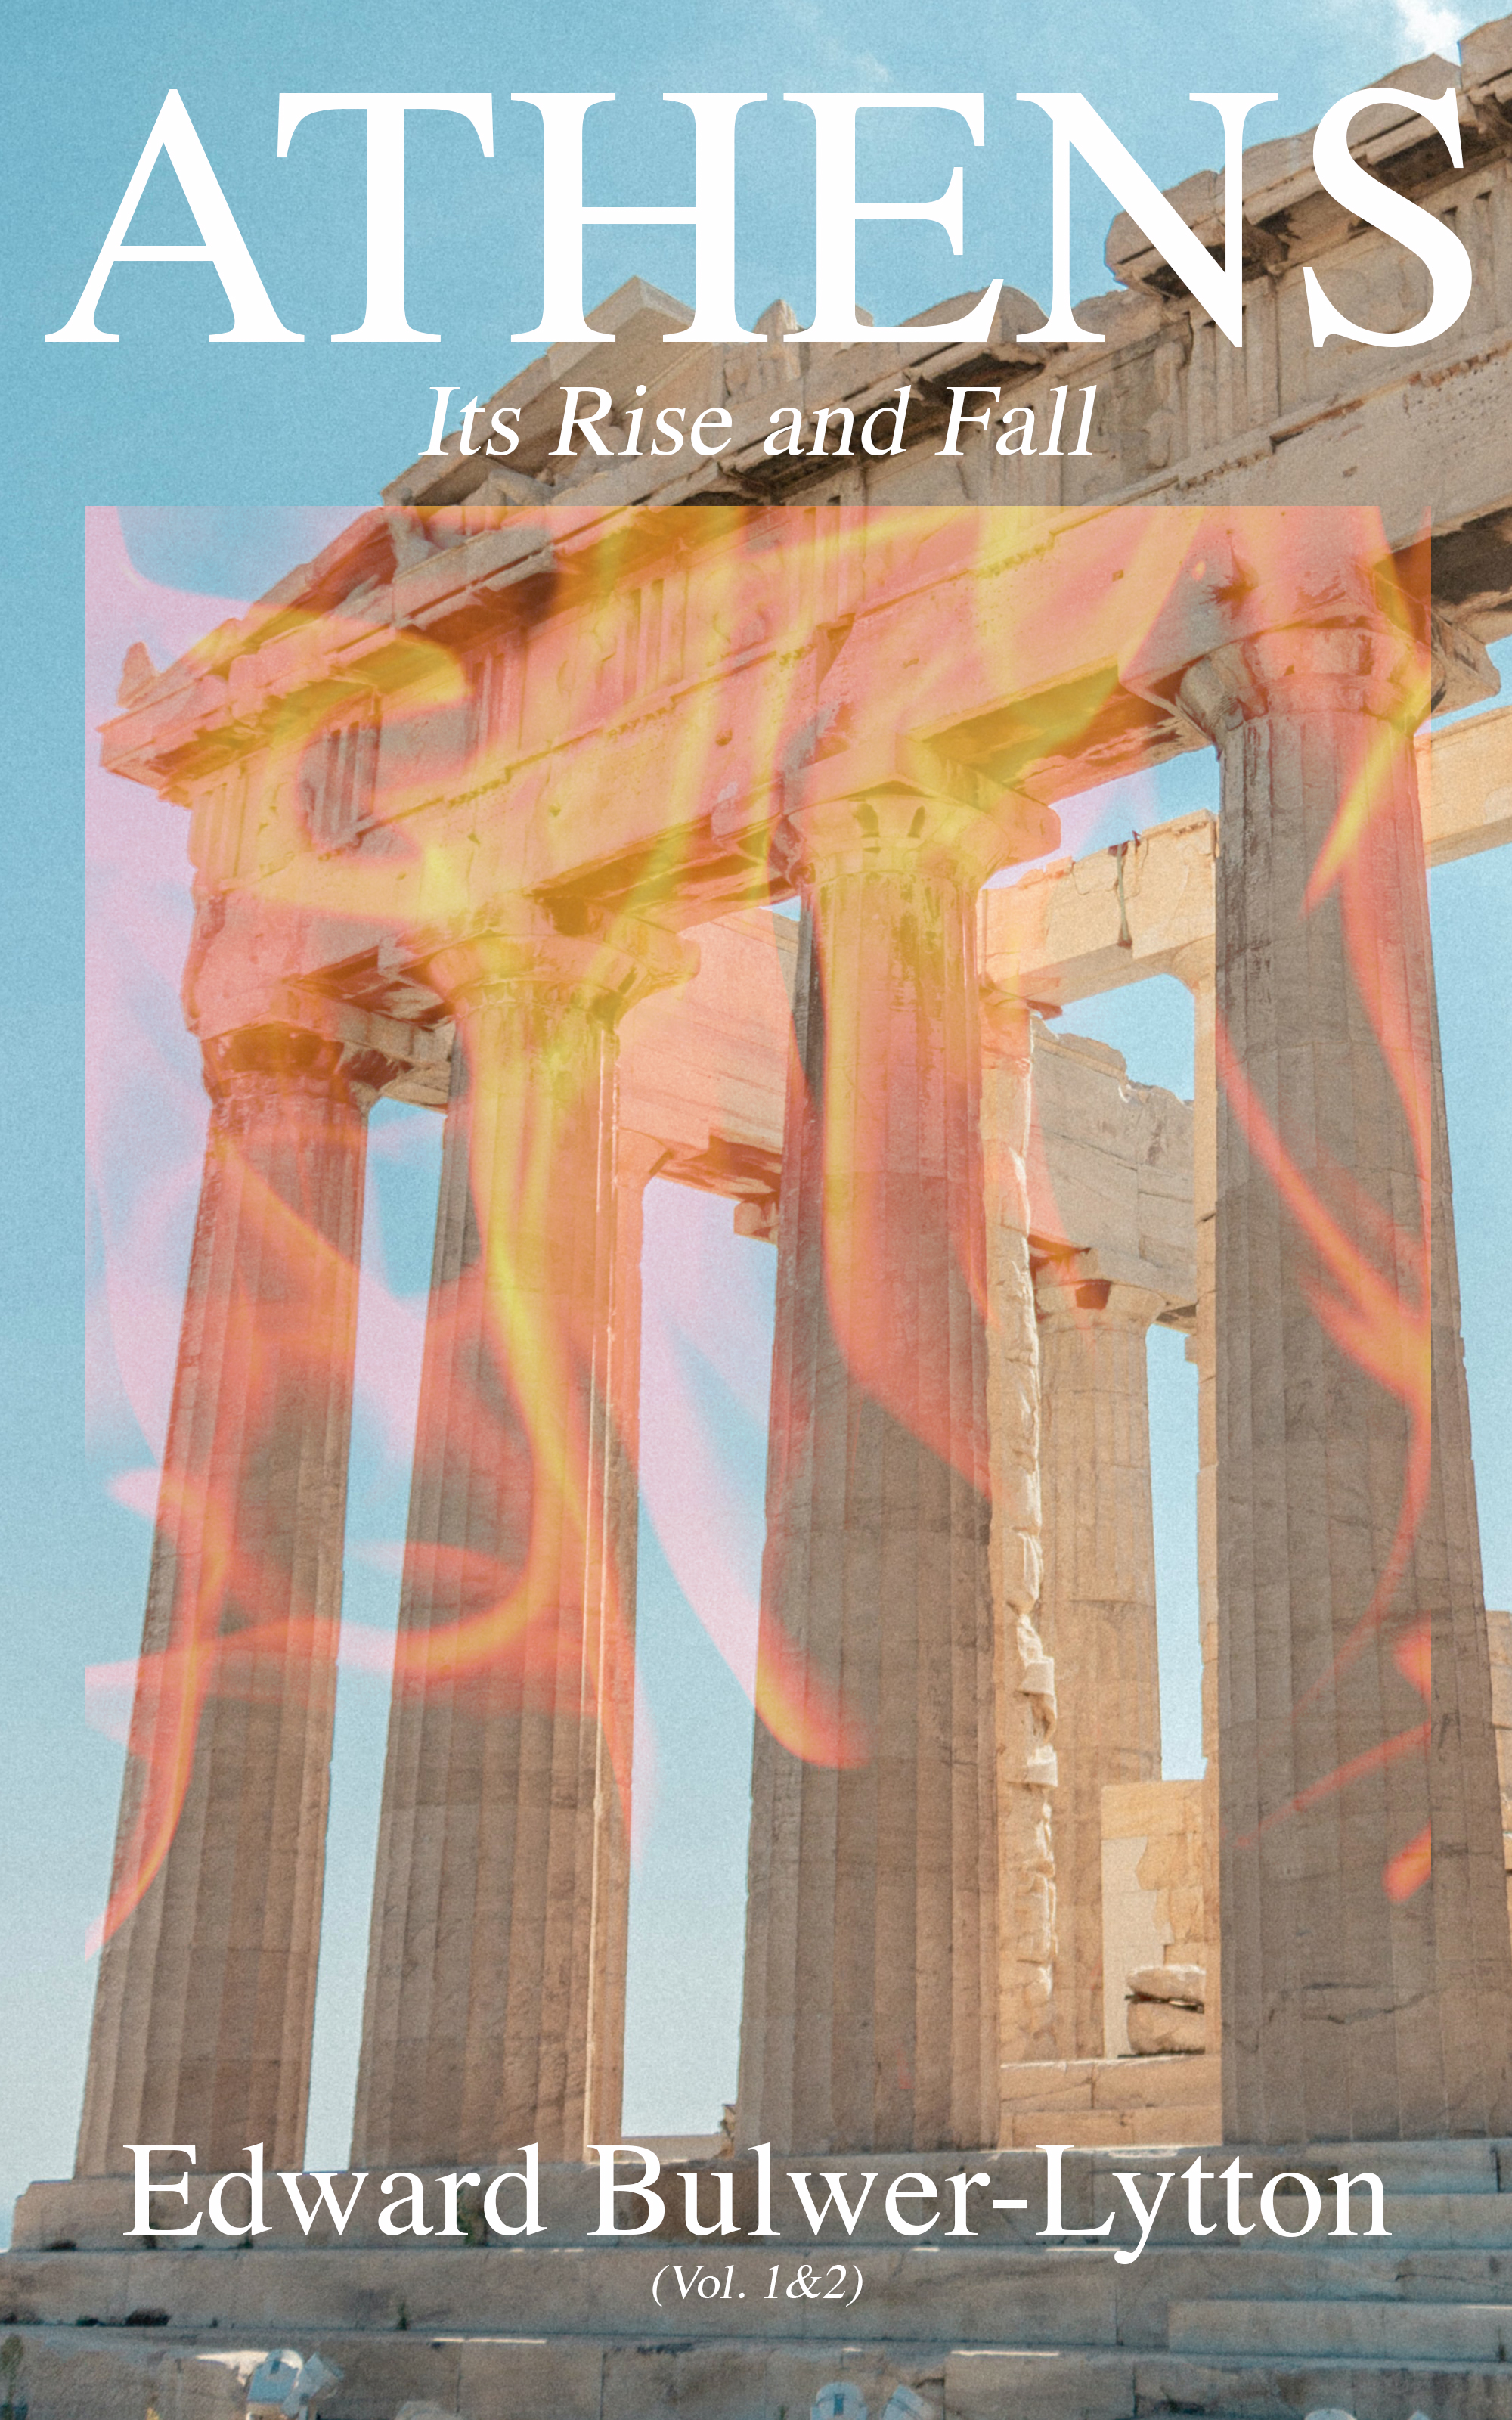 Athens - Its Rise and Fall (Vol. 1&2)